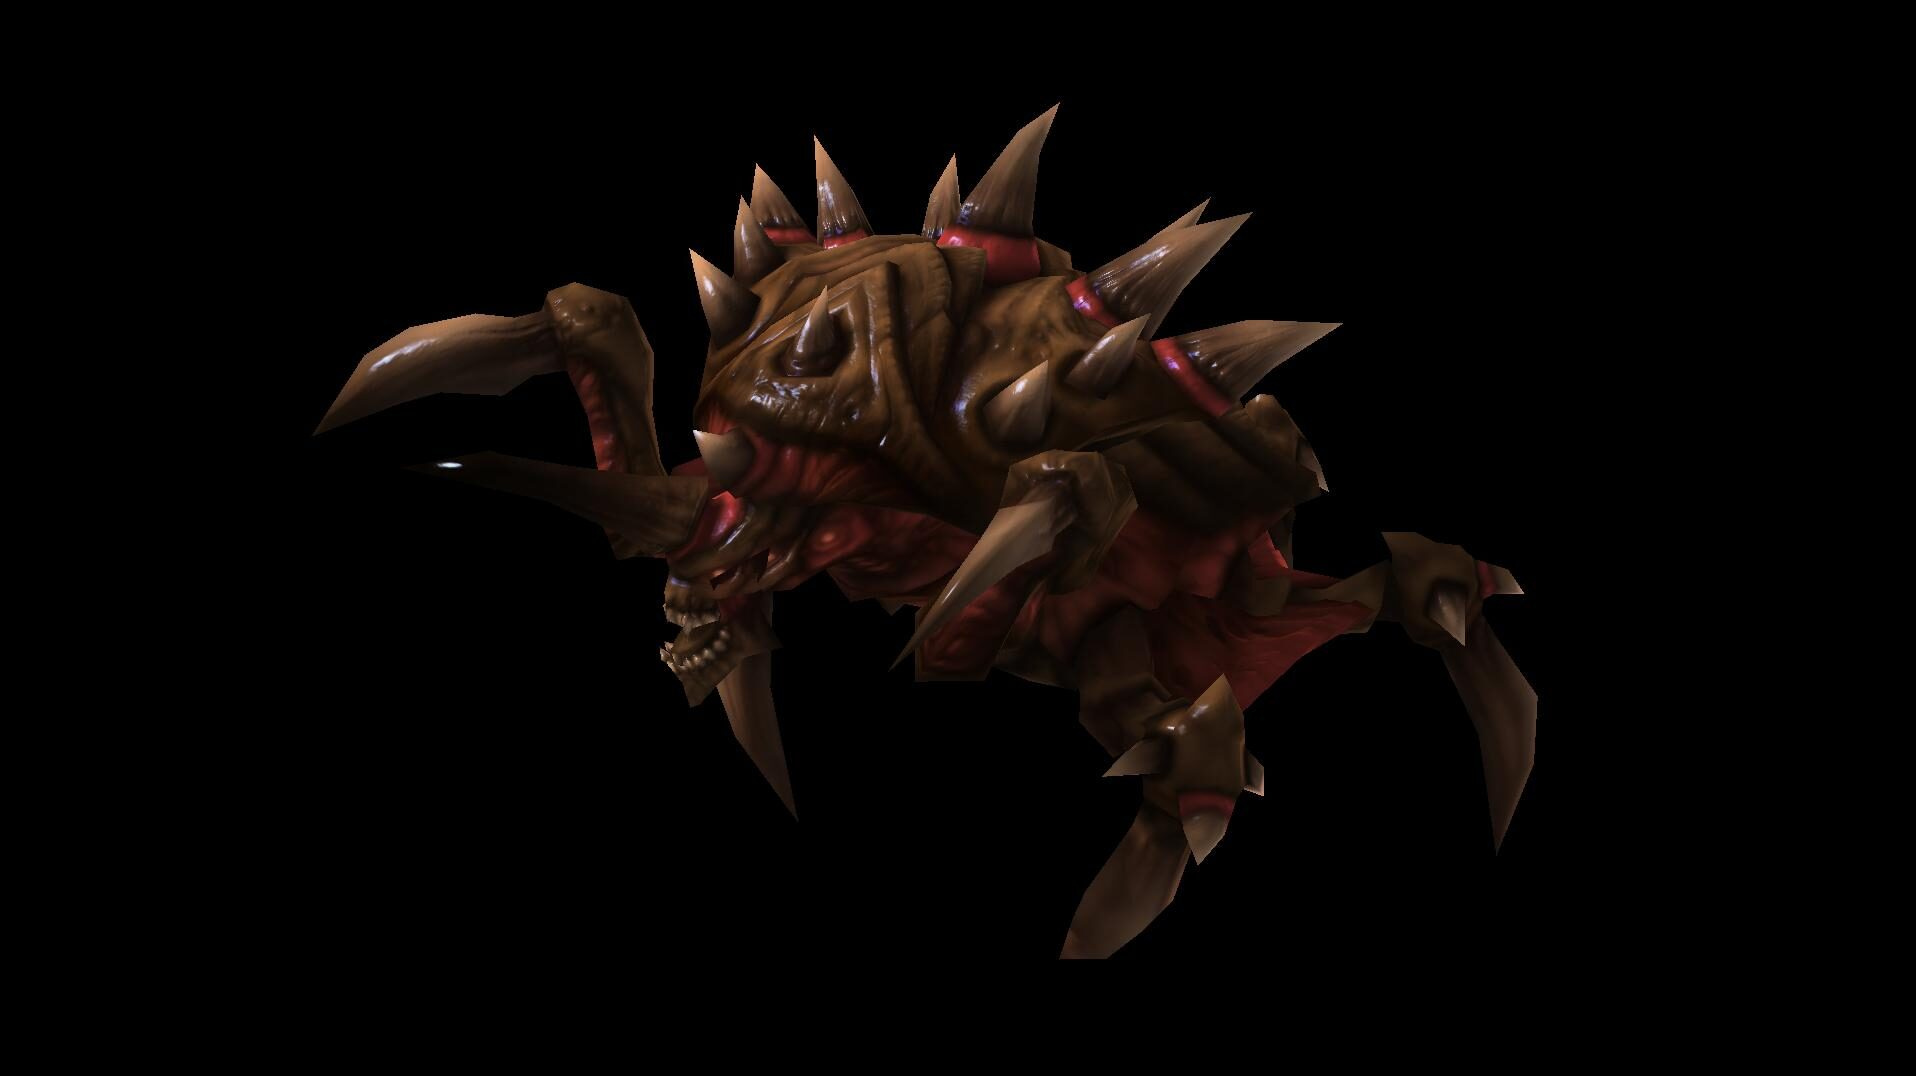 starcraft_ii_legacy_of_the_void_blizzcon_2014_lurker-2482802